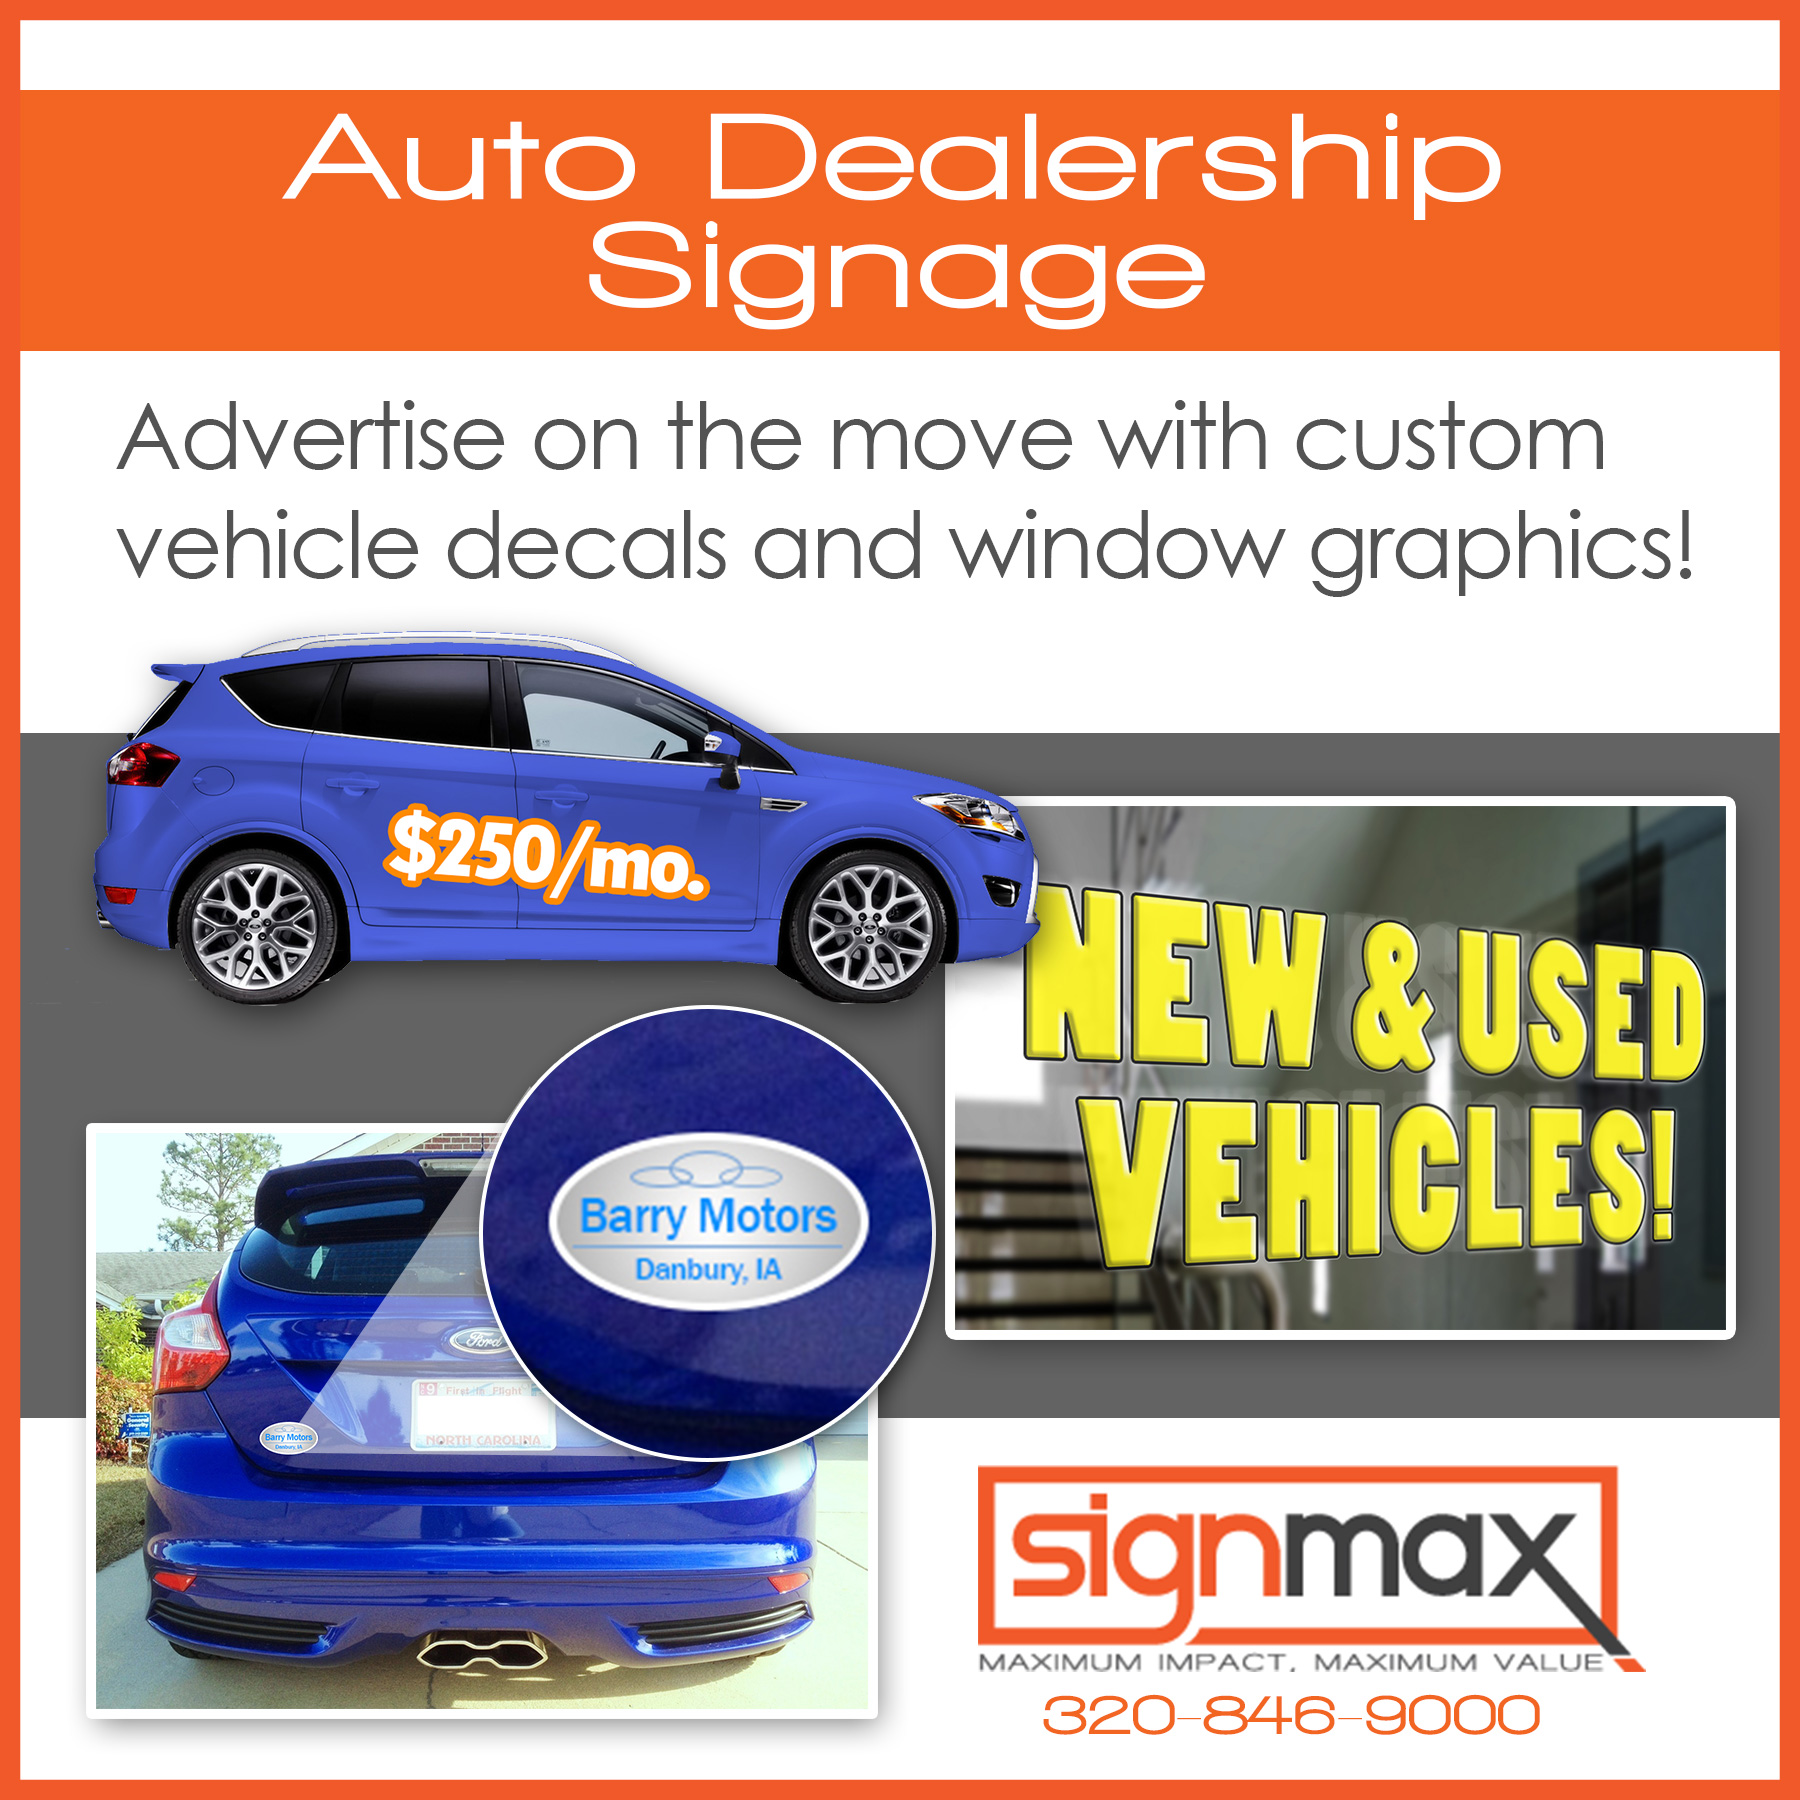 Auto Dealership Decals and Window Graphics | Signmax.com